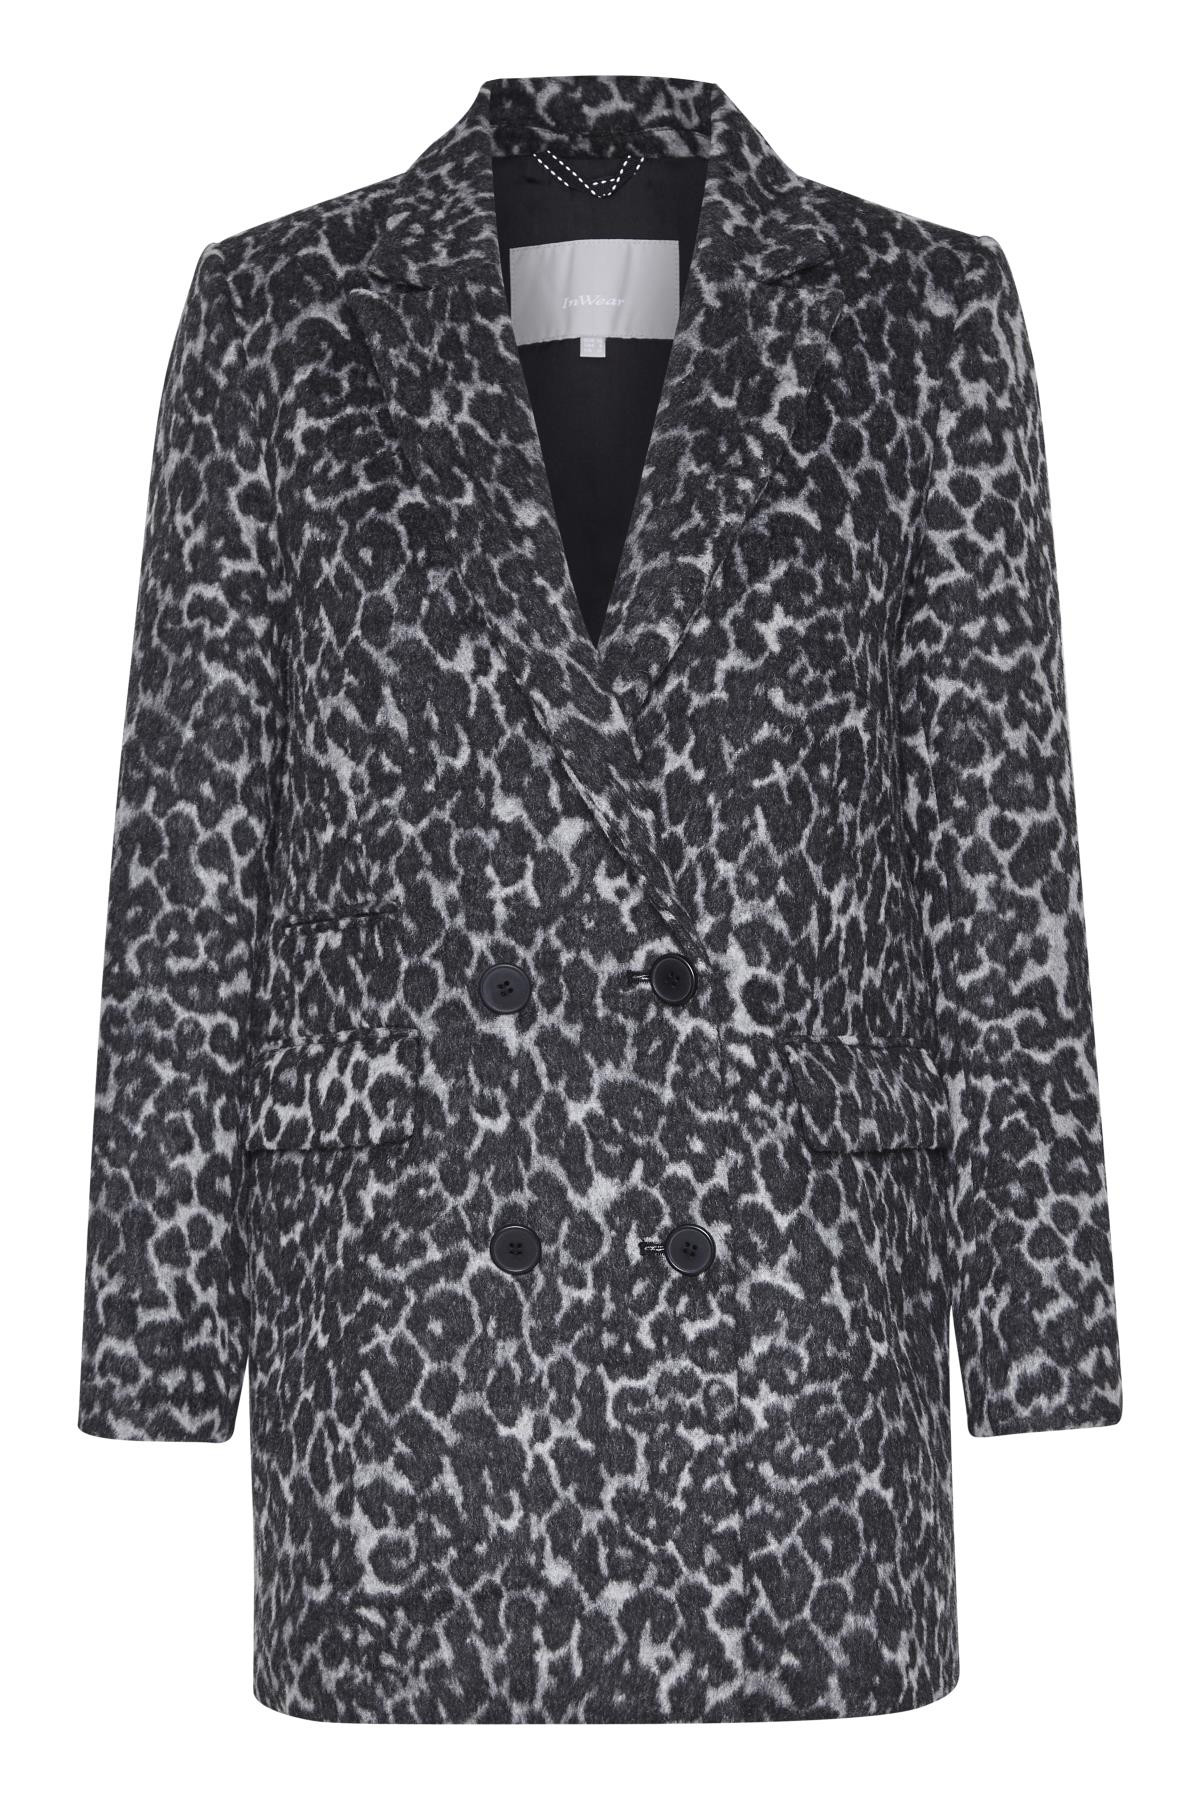 Image of   InWear GIOVANNA BLAZER 30103438 (Leopard Non-color 11367, 38)